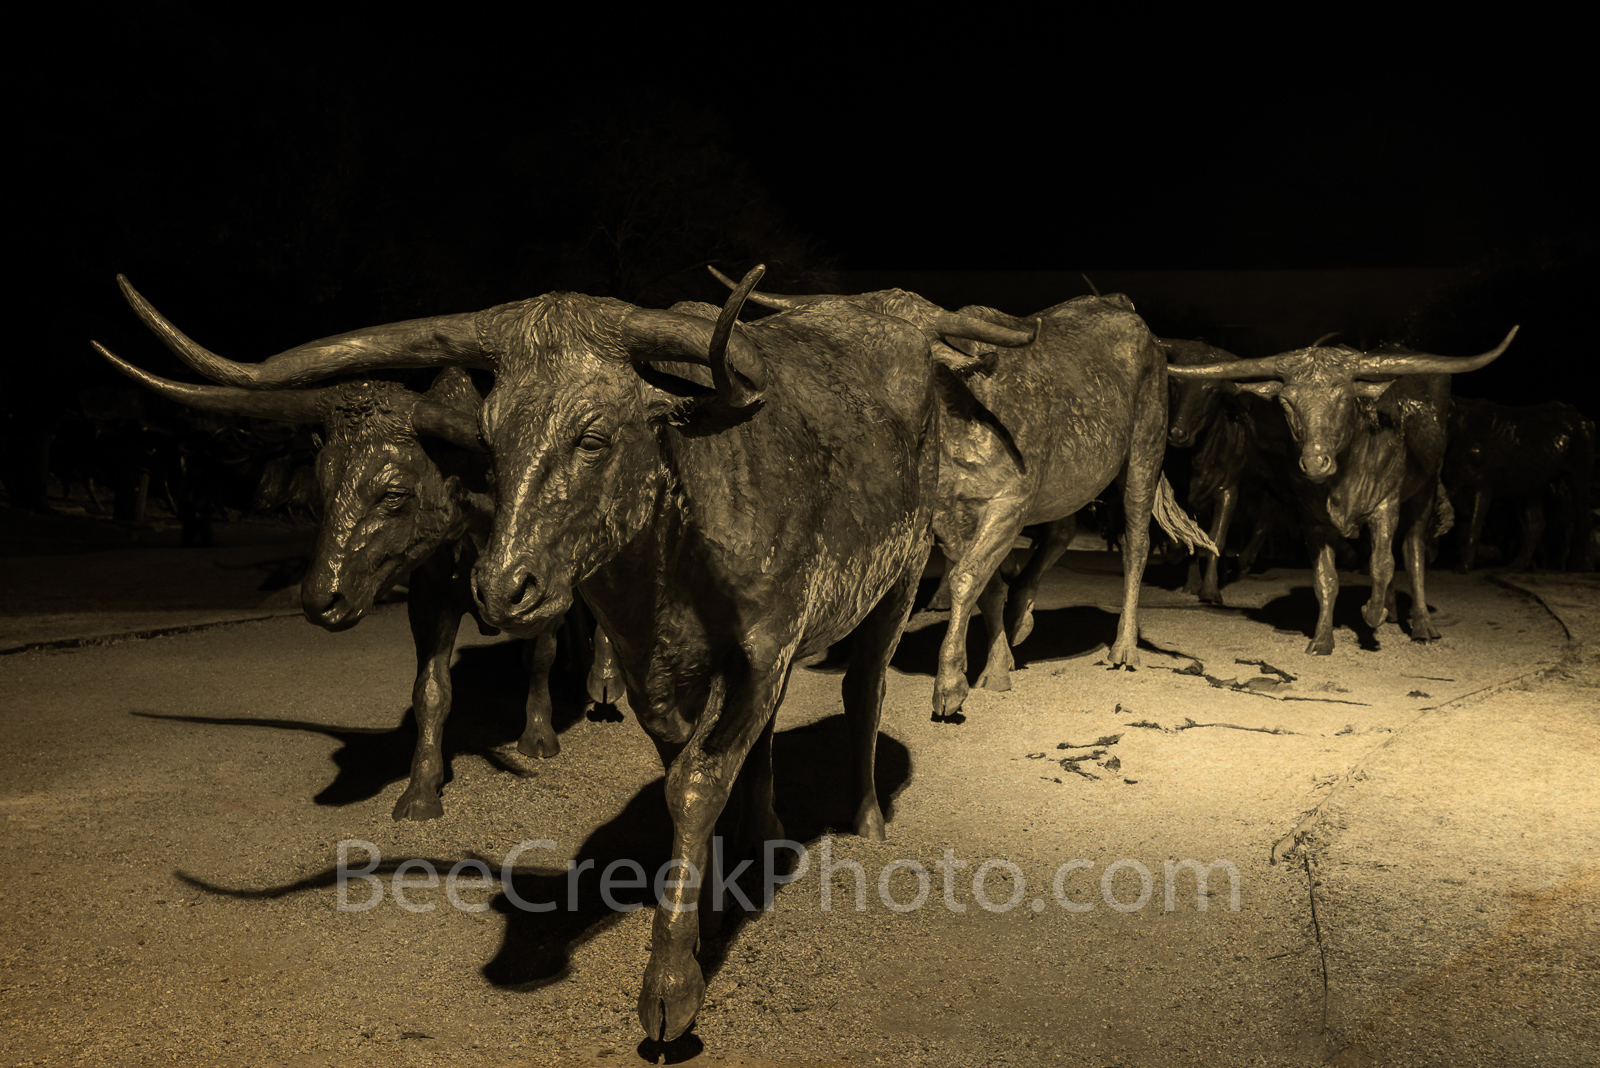 Dallas, Pioneer Plaza, antique tone, downtown, city, cityscape, cityscapes, night, cattle, bronze, statues, park, longhorns, texas,, photo